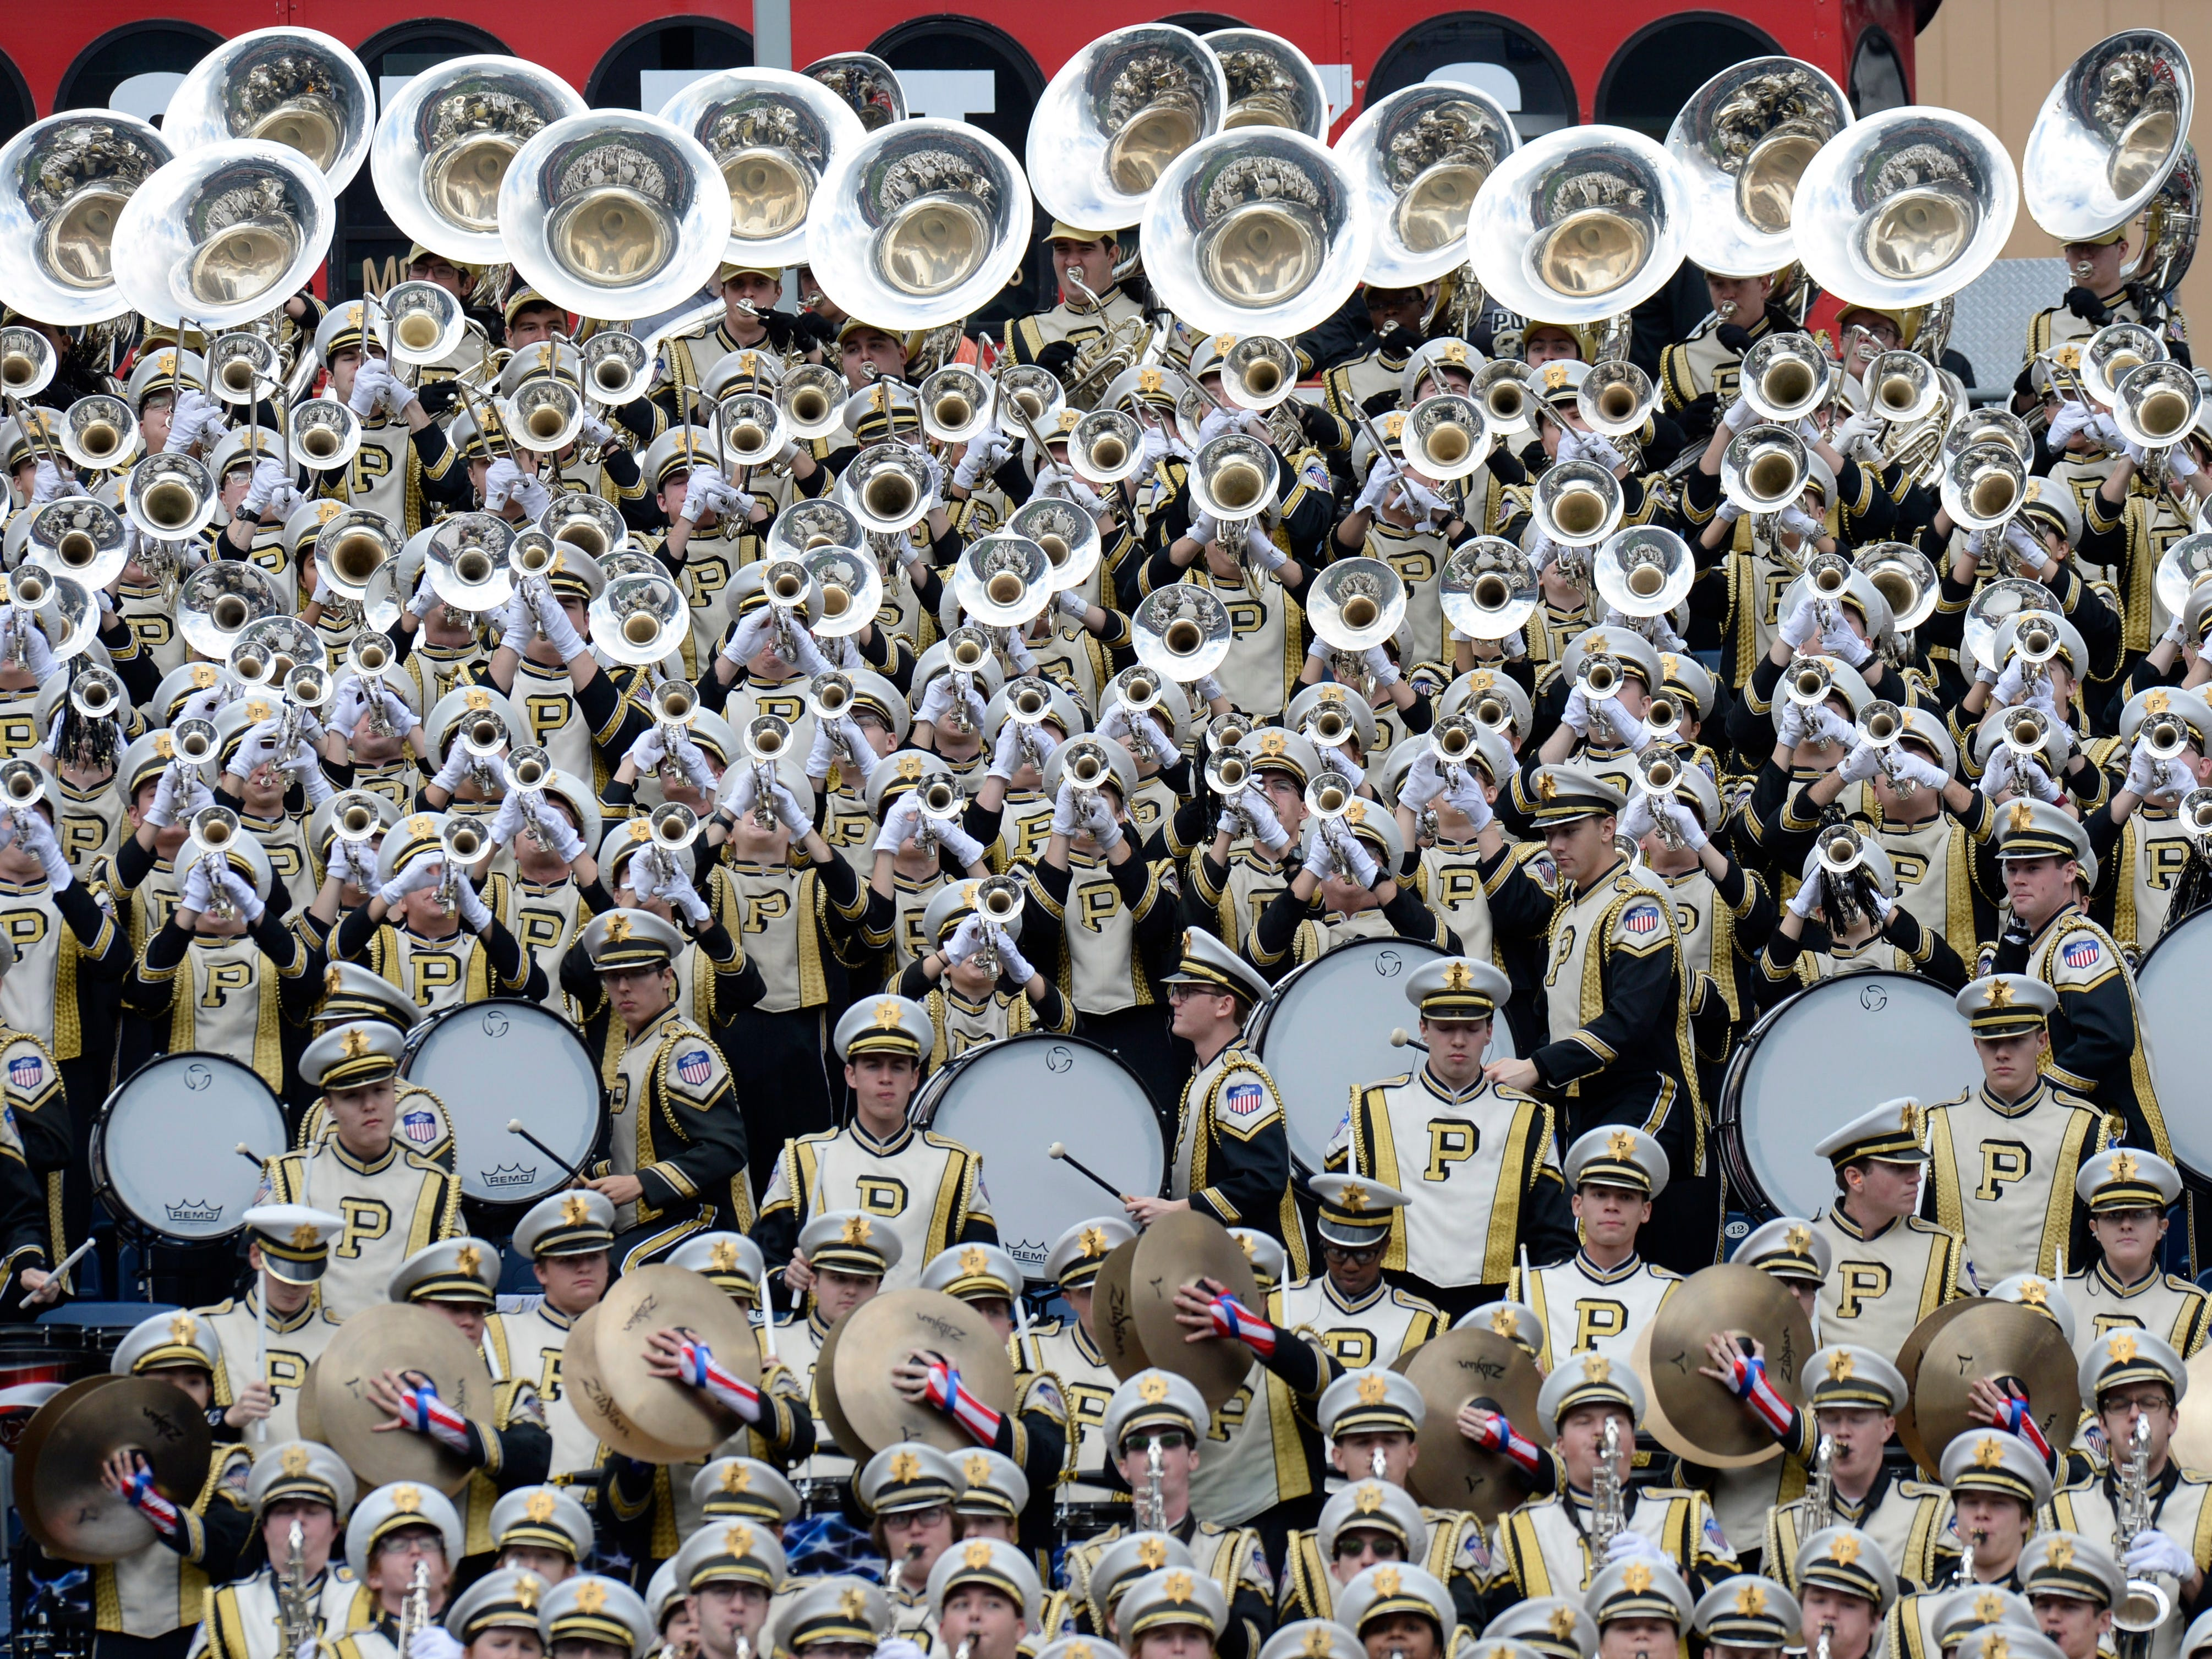 Purdue band members play before the start of the Music City Bowl NCAA college football game Friday, Dec. 28, 2018, at Nissan Stadium in Nashville, Tenn.